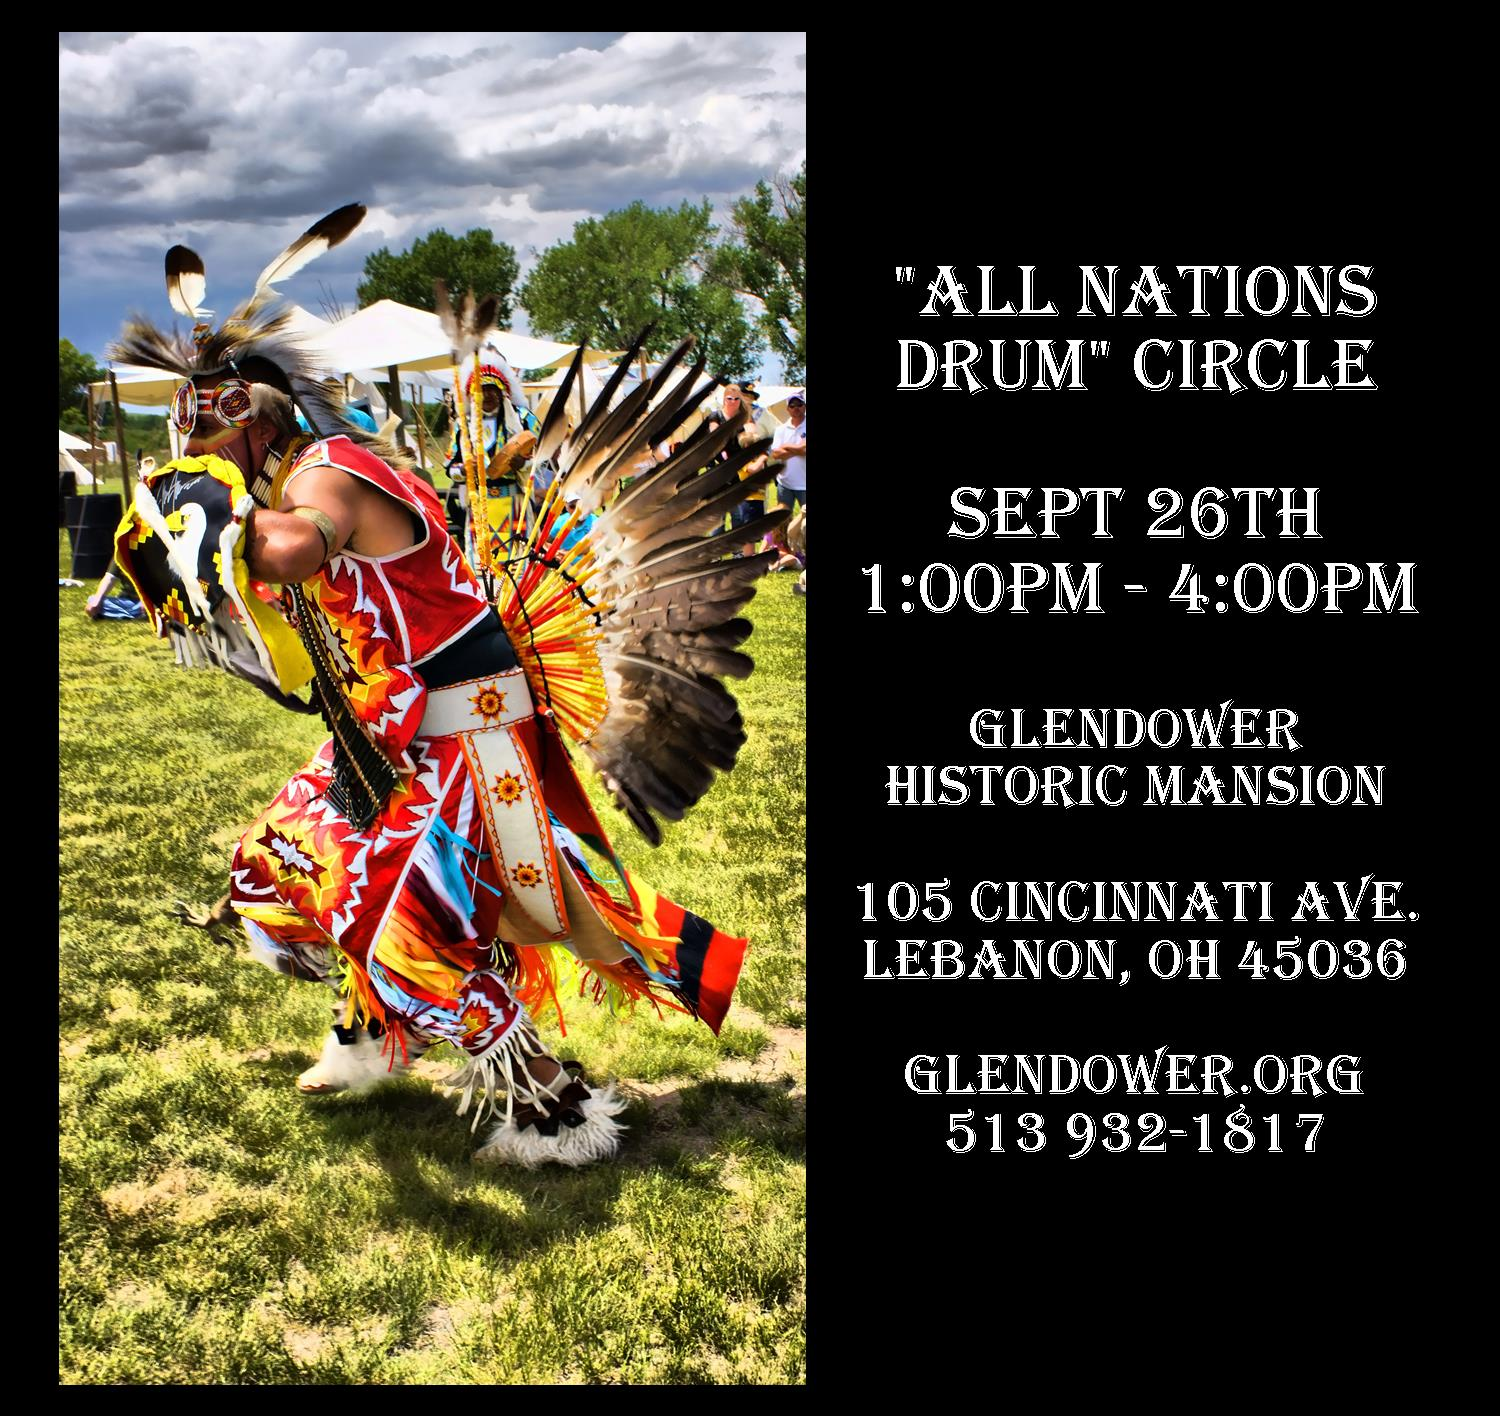 All Nations Drum Circle